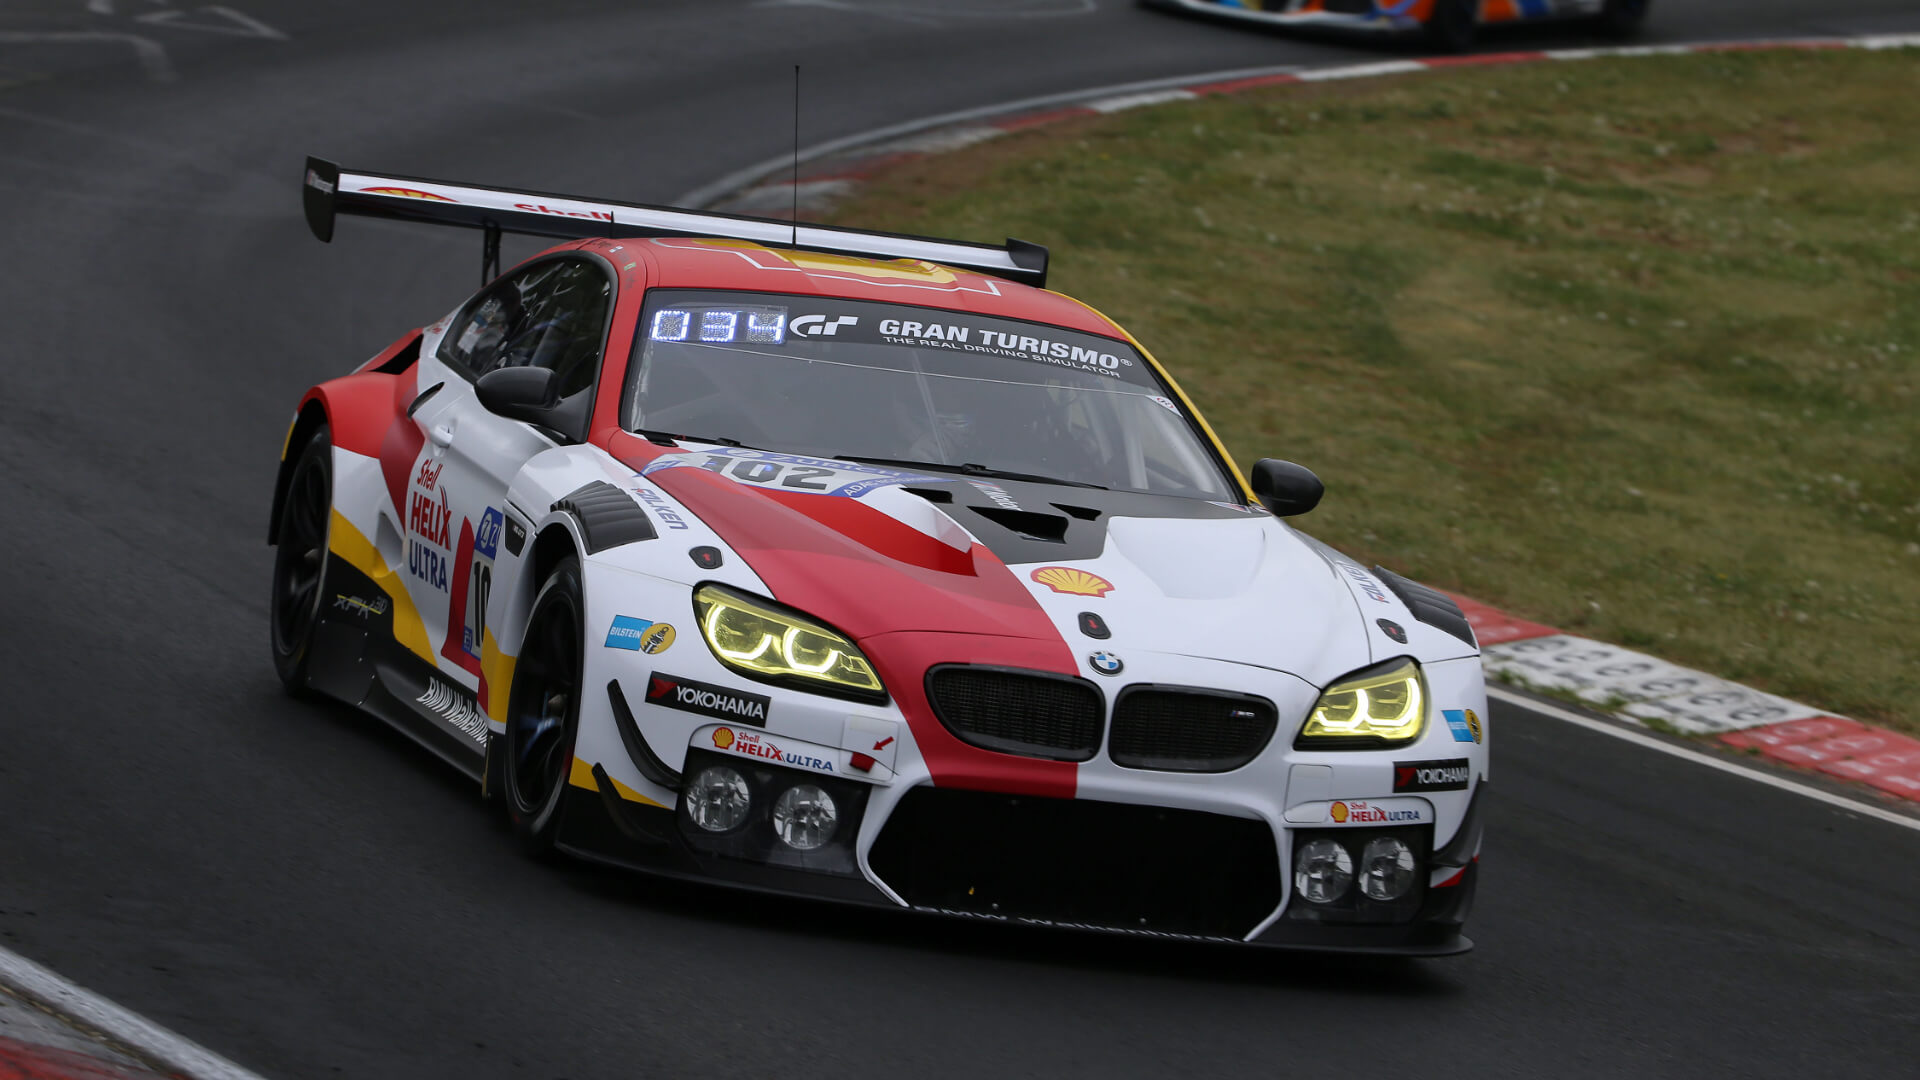 BMW M6 GT3 on the race track